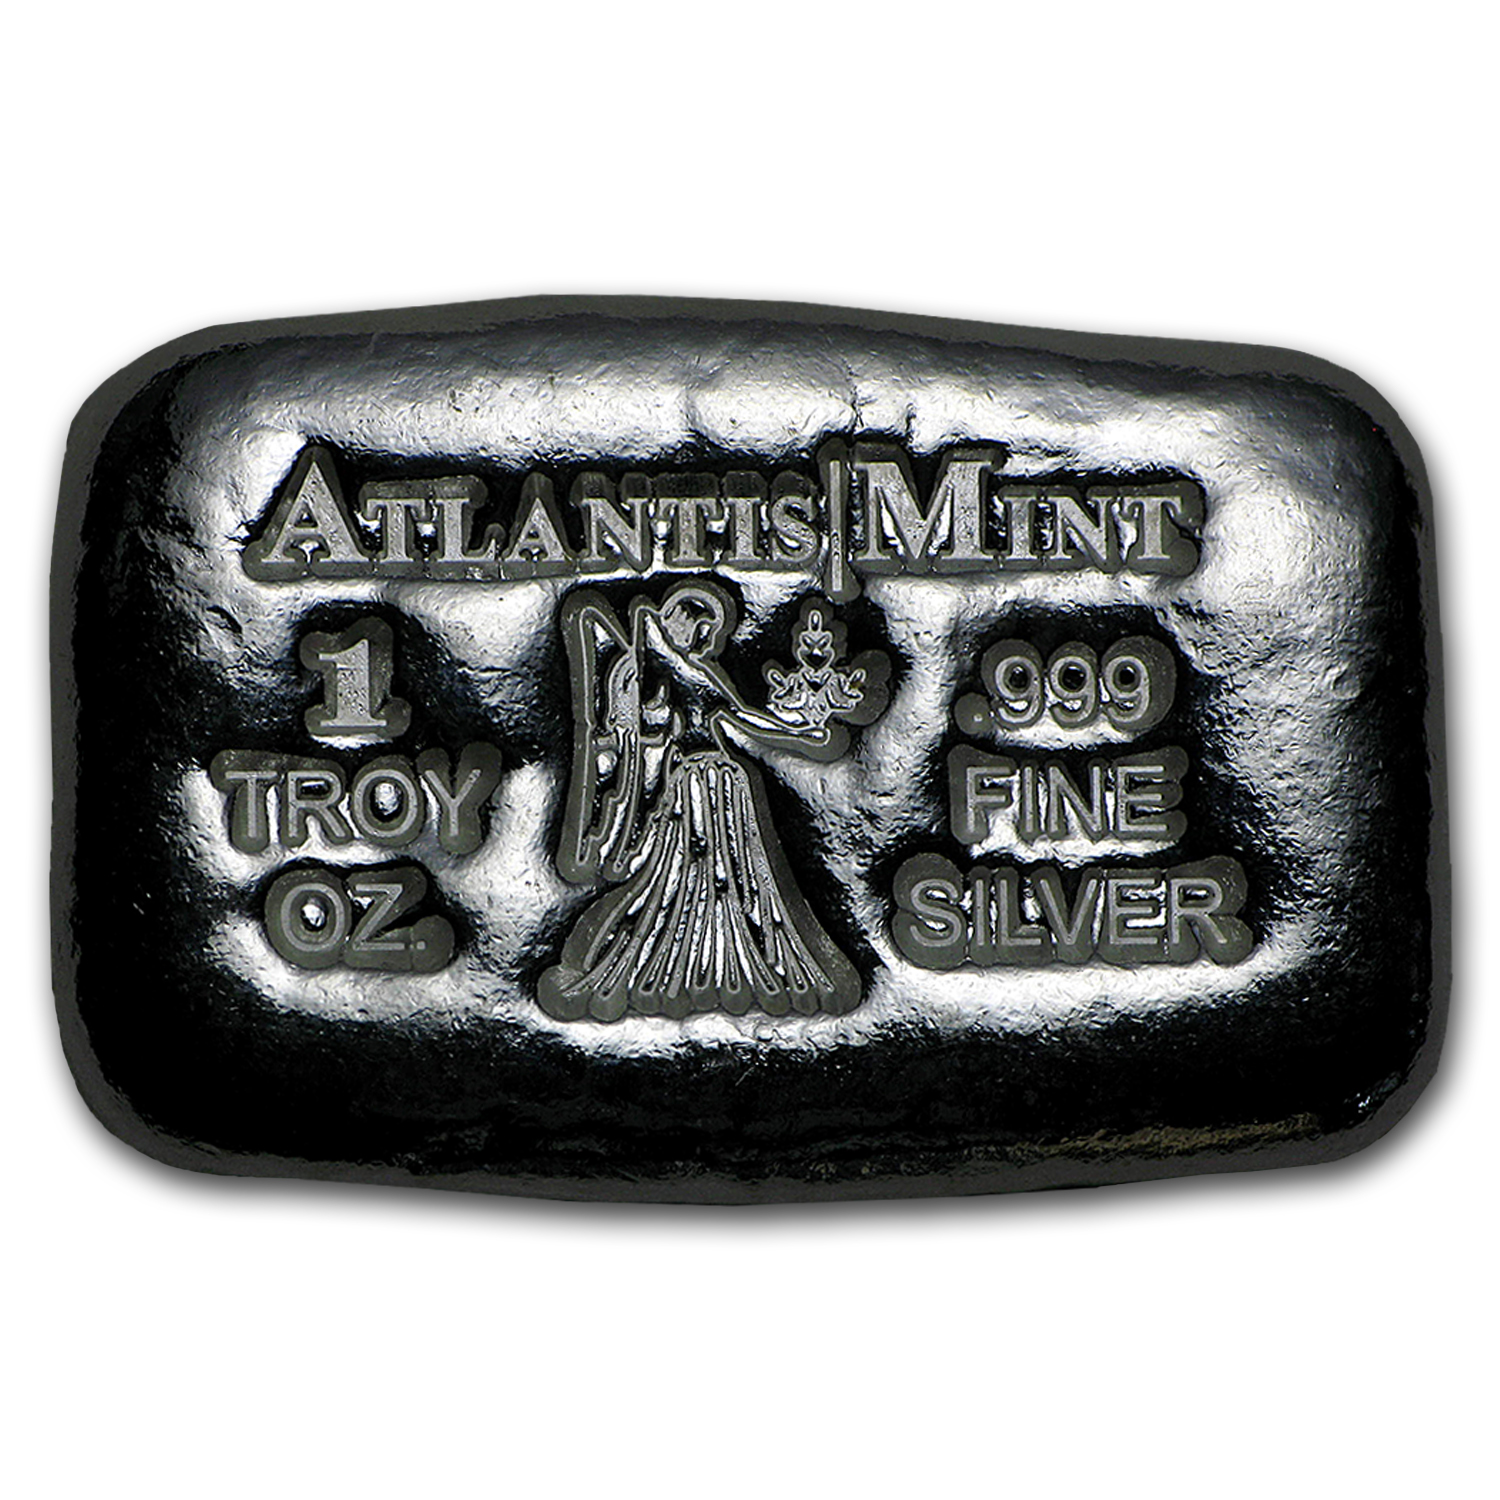 1 oz Silver Bar - Atlantis Mint (Zodiac Series, Virgo)